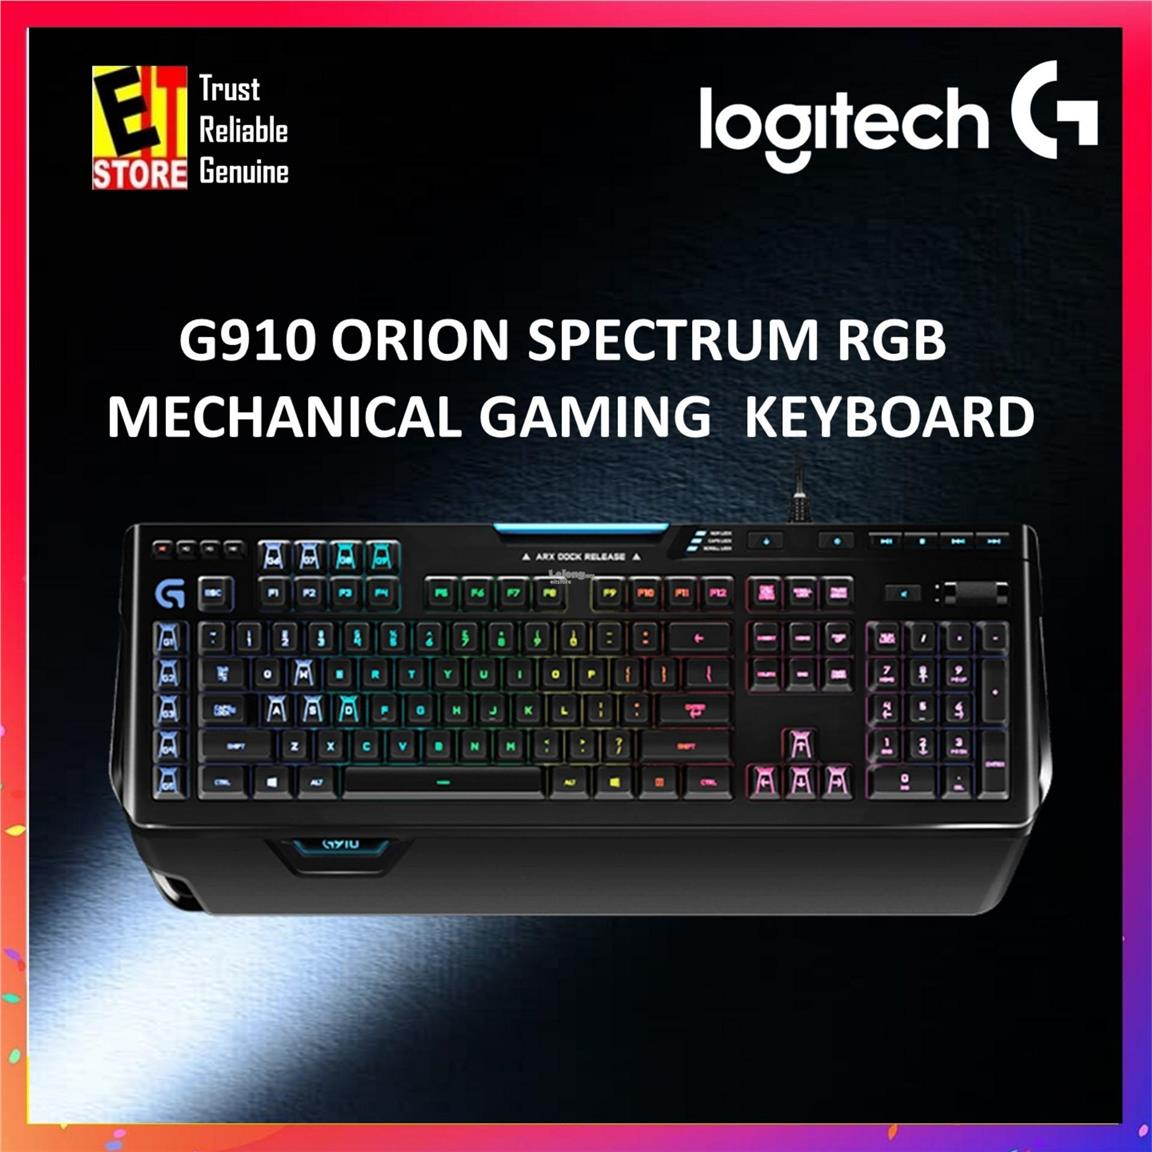 LOGITECH G910 ORION SPECTRUM RGB MECHANICAL GAMING KEYBOARD 920-008021